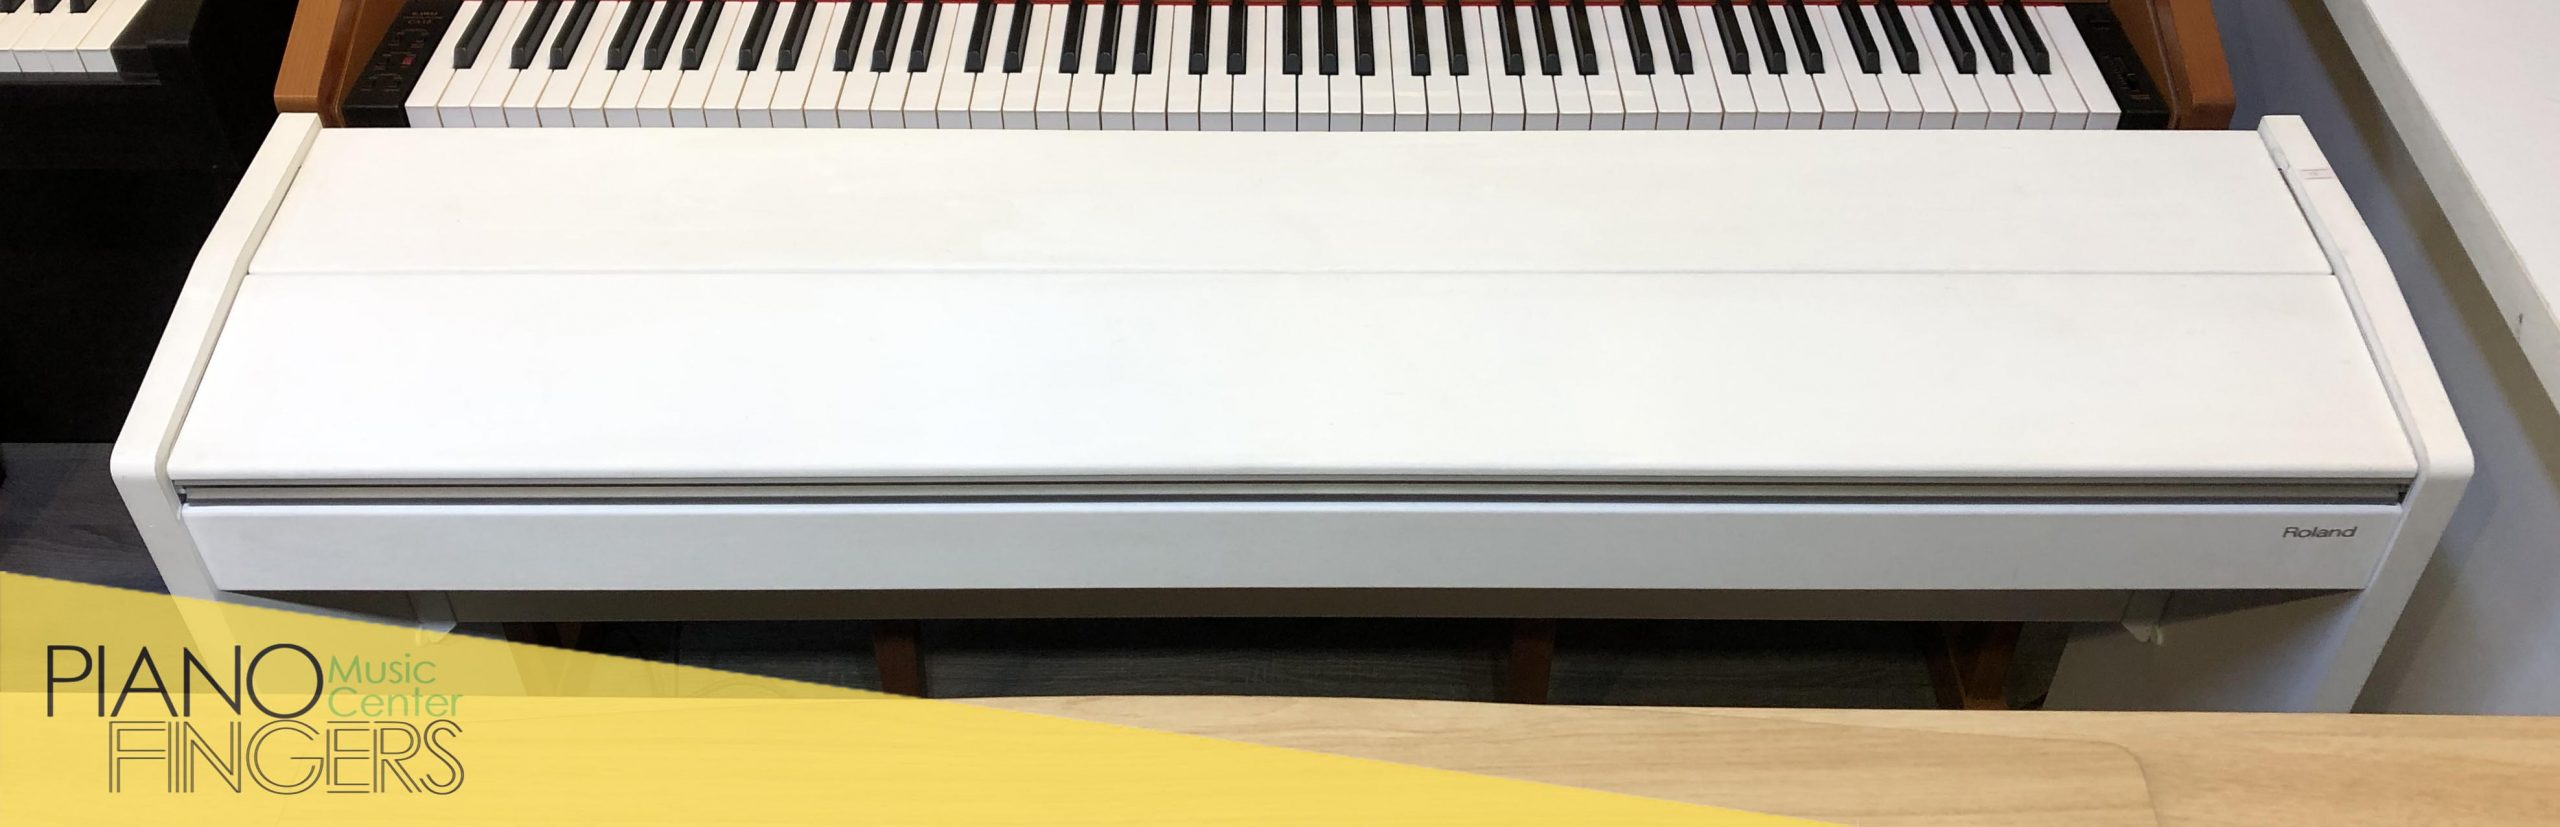 piano điện roland f-120 1